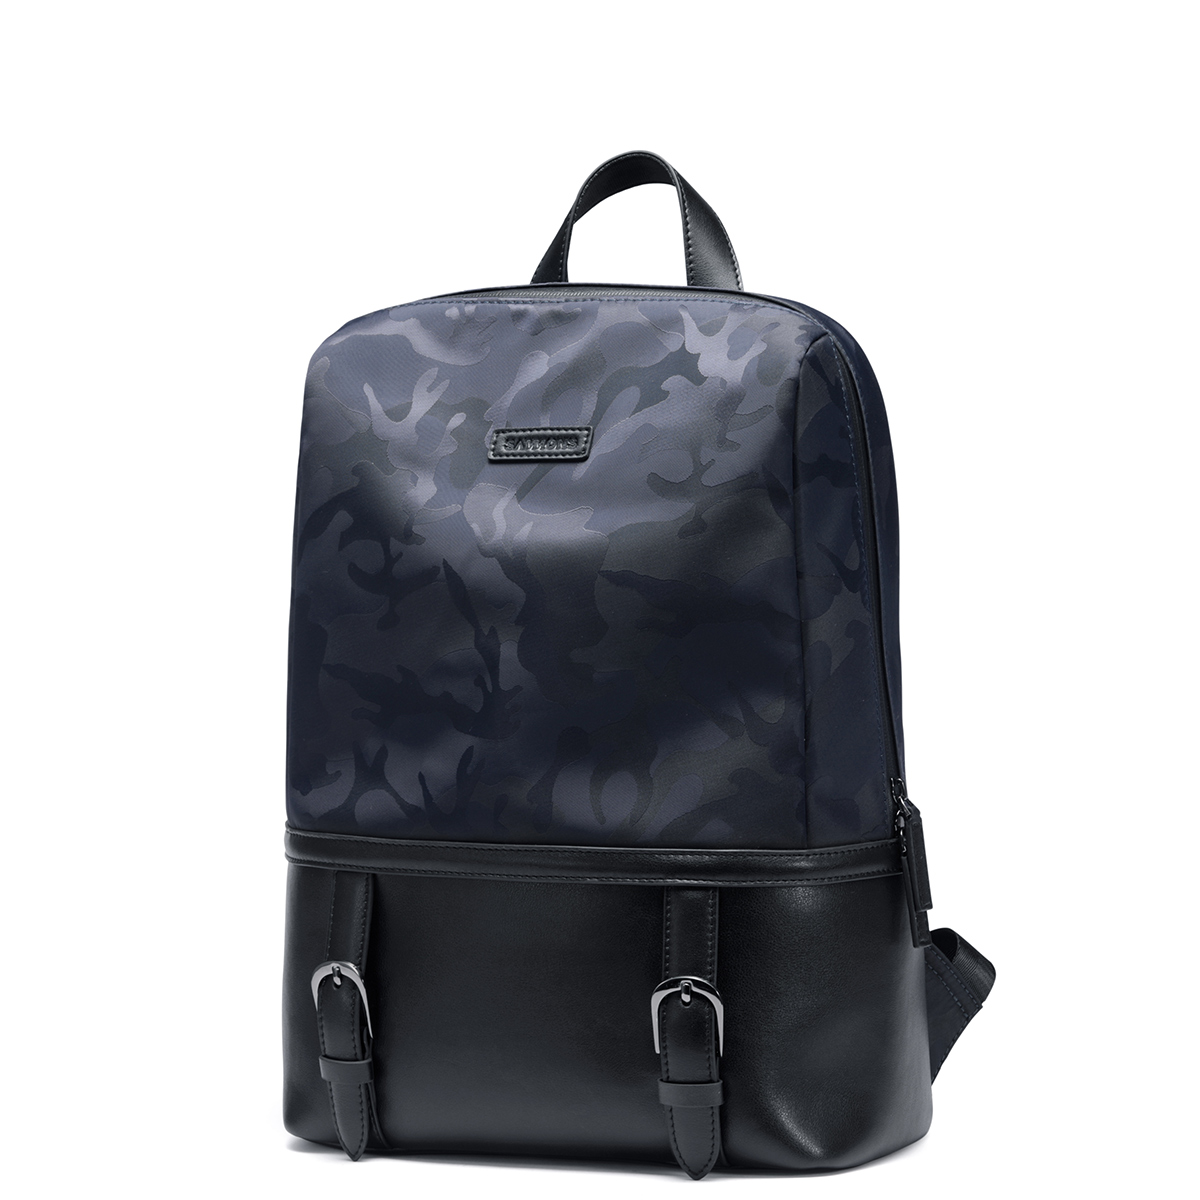 Men Backpacks High Quality Genuine Cow Leather Nylon Camouflage Man Schoolbag Large Capacity Male Waterproof Laptop Travel Bag high quality men genuine leather backpack italian 100% cow leather unisex bag large capacity casual vintage backpacks mochila